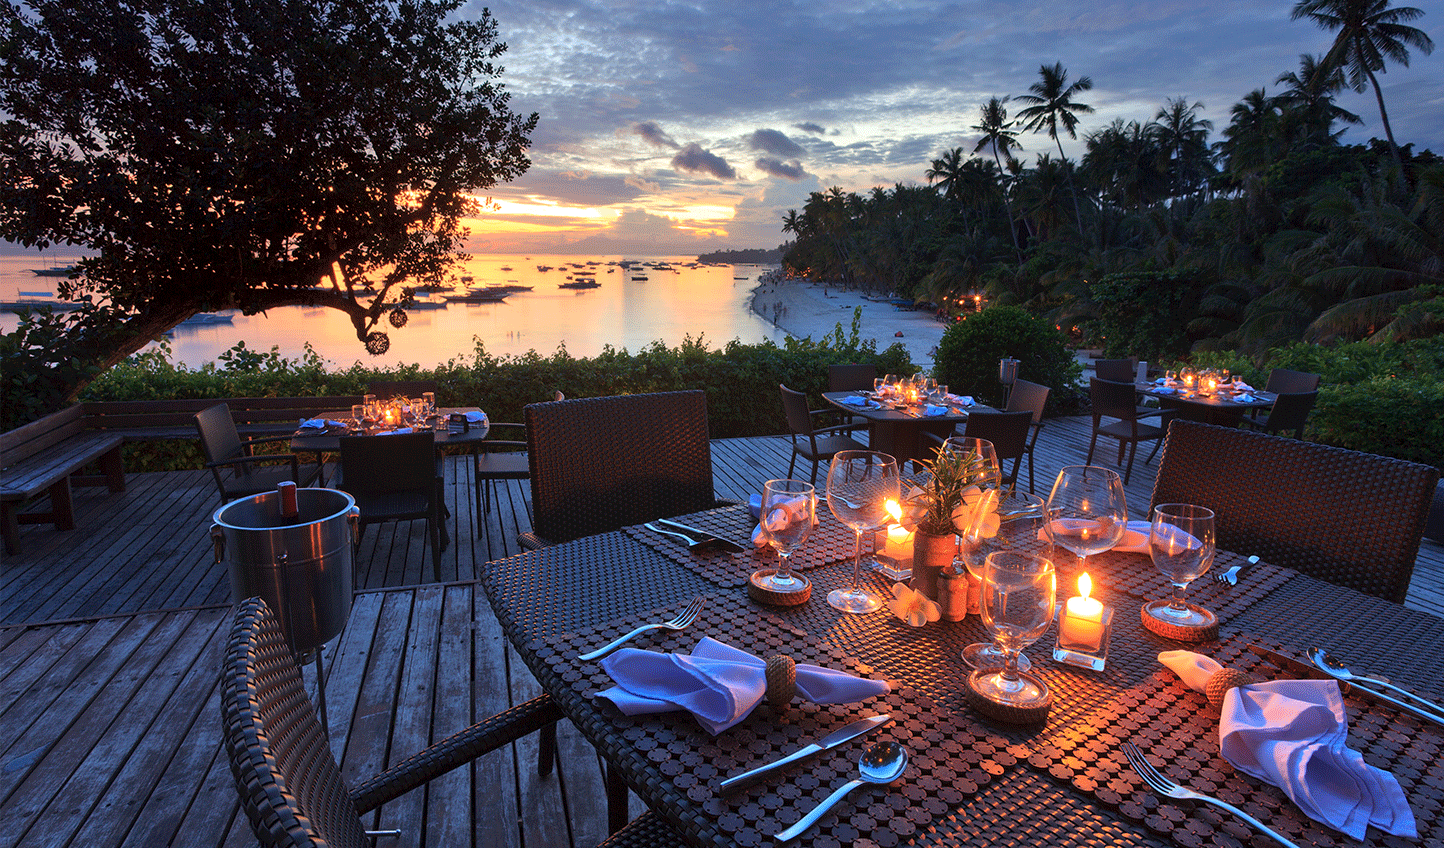 Dine al fresco as the sun sets in the distance